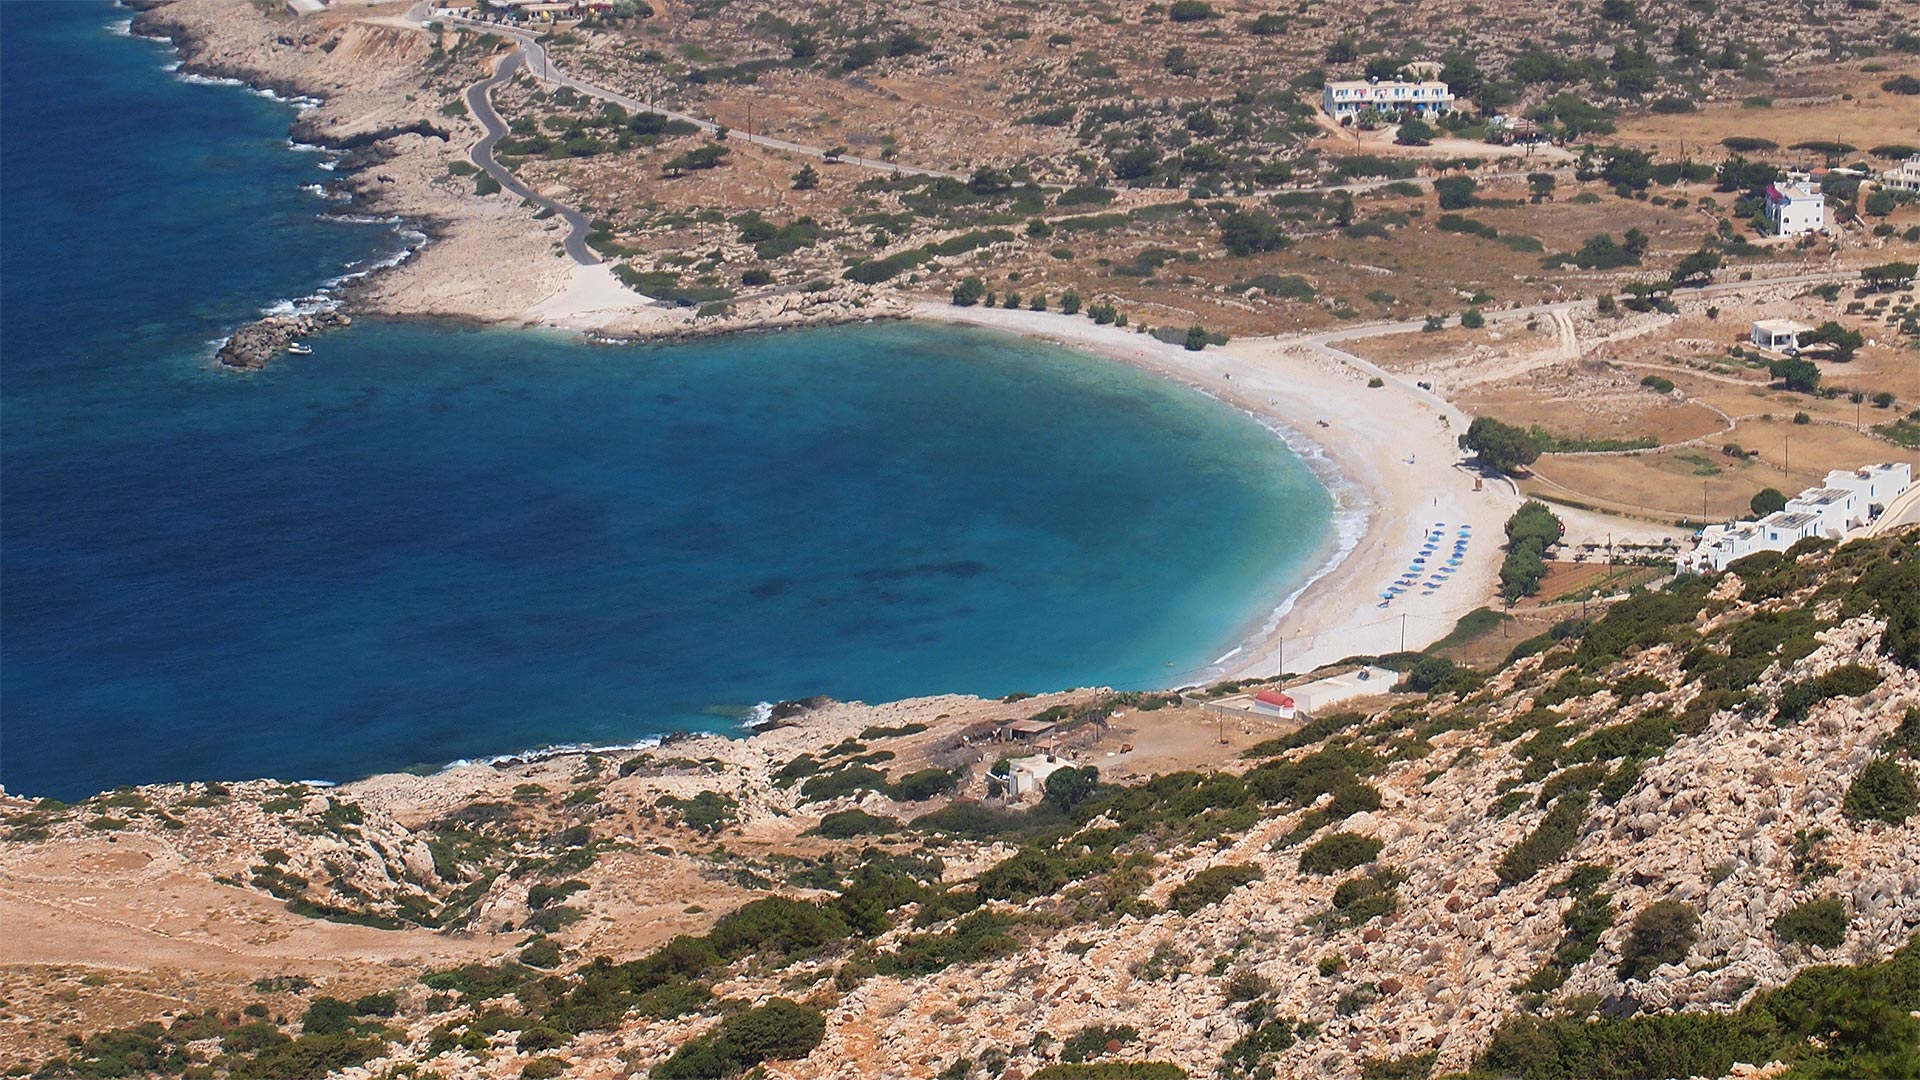 images/slider/potali-beach-lefkos-karpathos.jpg